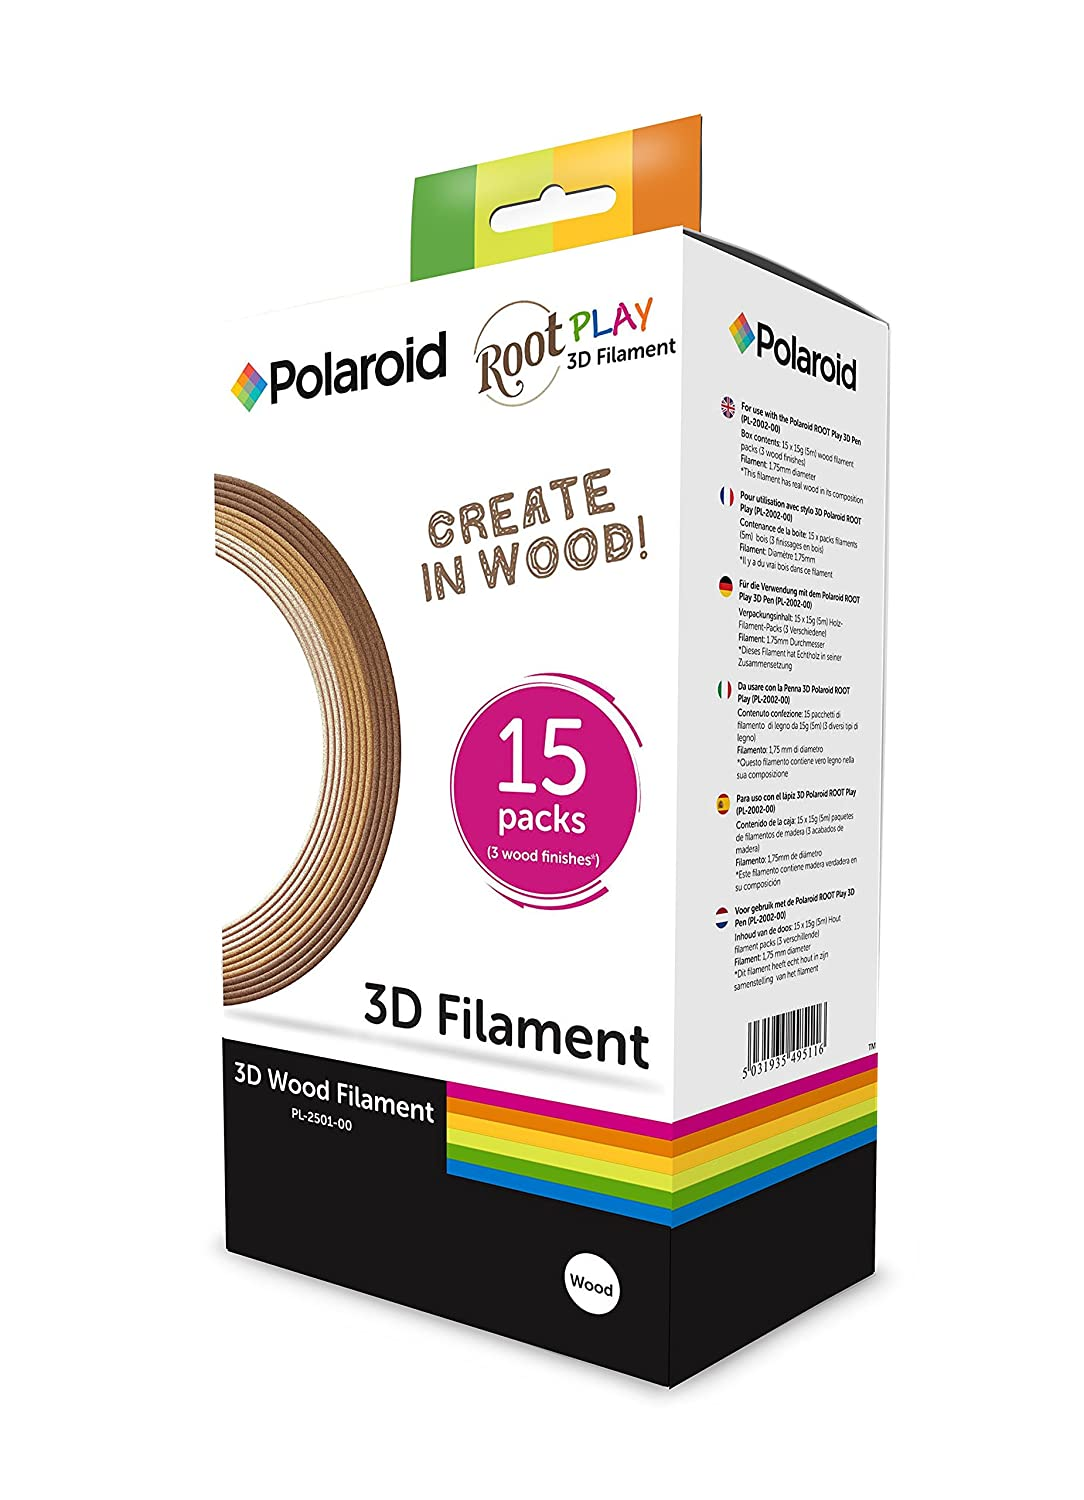 Polaroid 3D PLA Root Play Wood Filament Pack - Three wood colors 15 x 5m - 1.75mm diameter 3D-FP-PL-2501-00